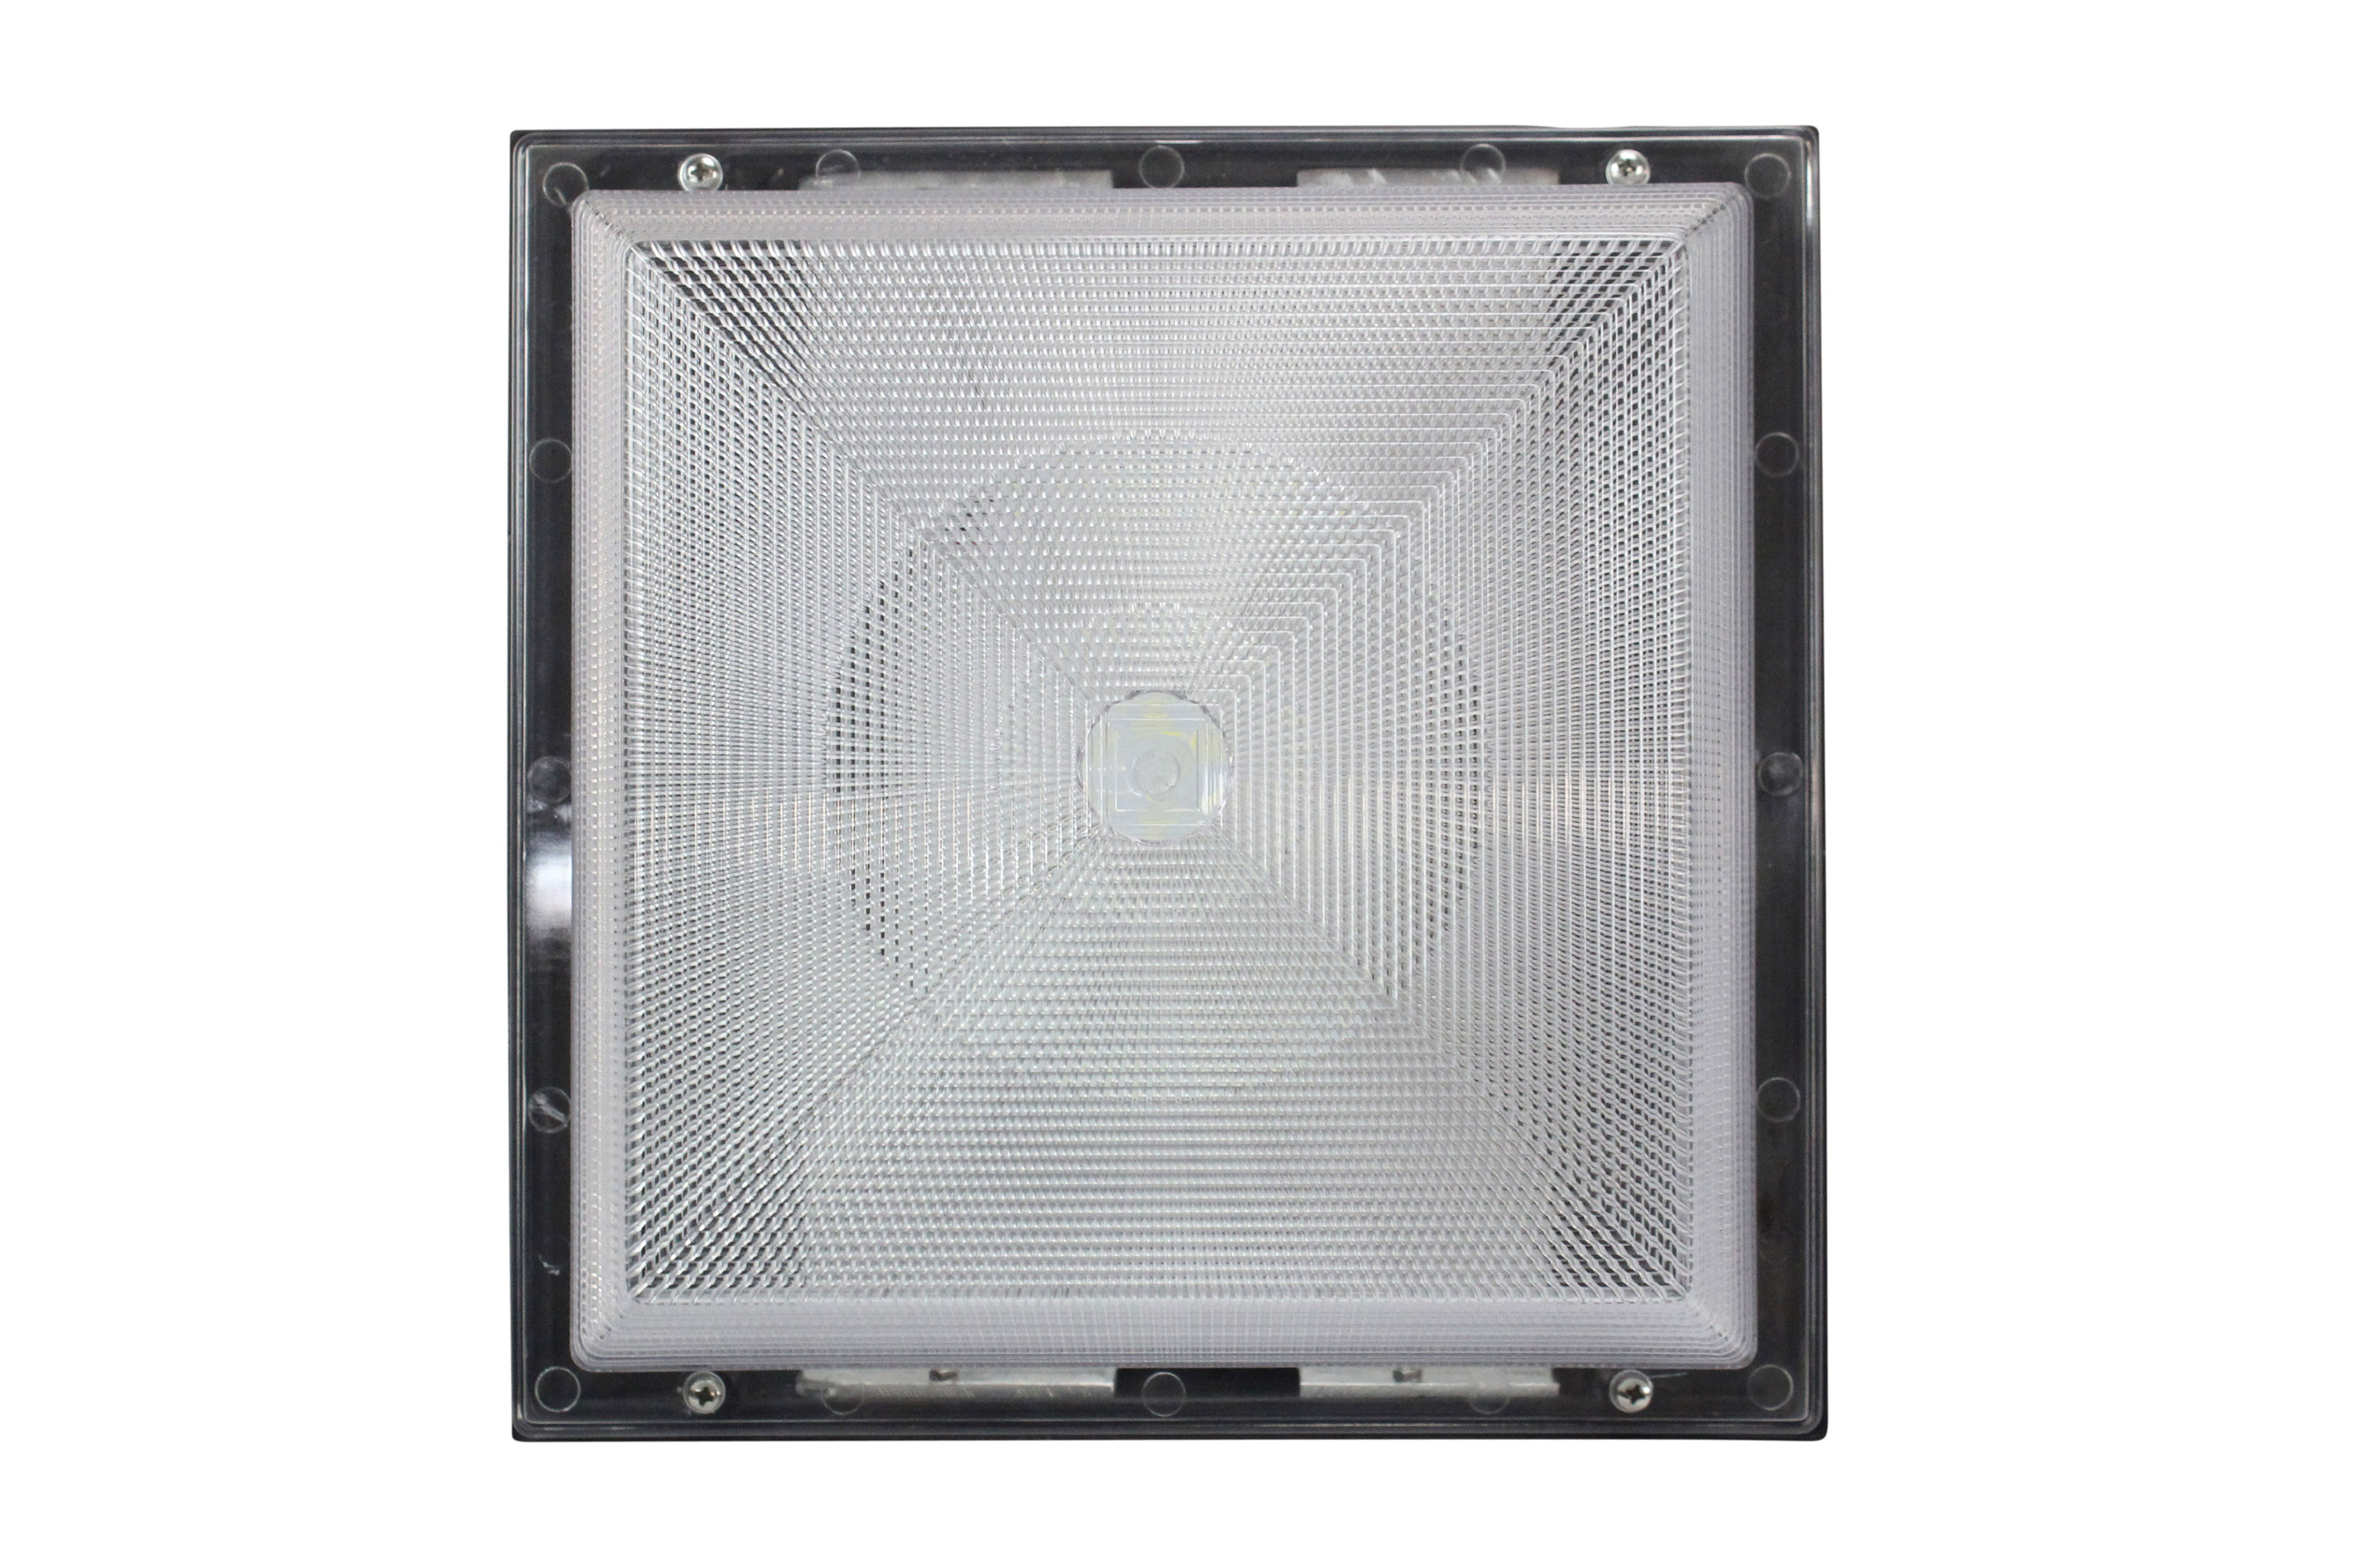 90 watt traditional led canopy light released by larson electronics 90 watt traditional led canopy light to replace 400 watt metal halidestraditional historic style led ceiling mount light fixture arubaitofo Images